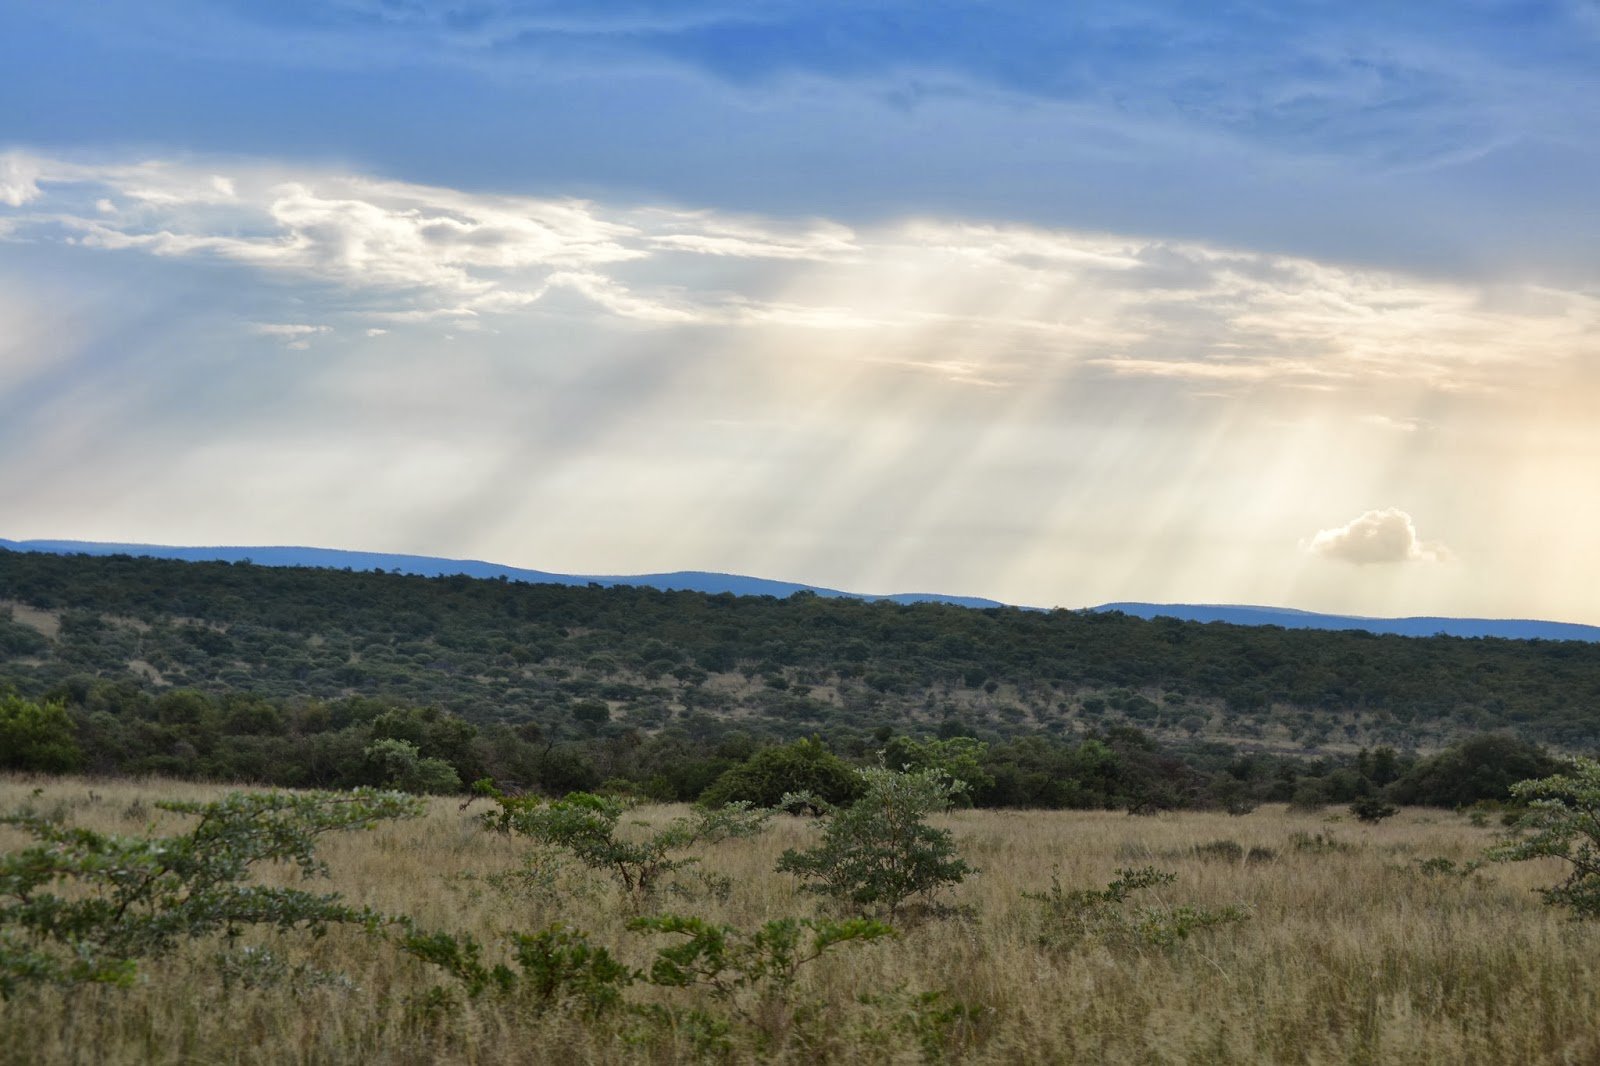 Sun rays through the clouds onto african landscape